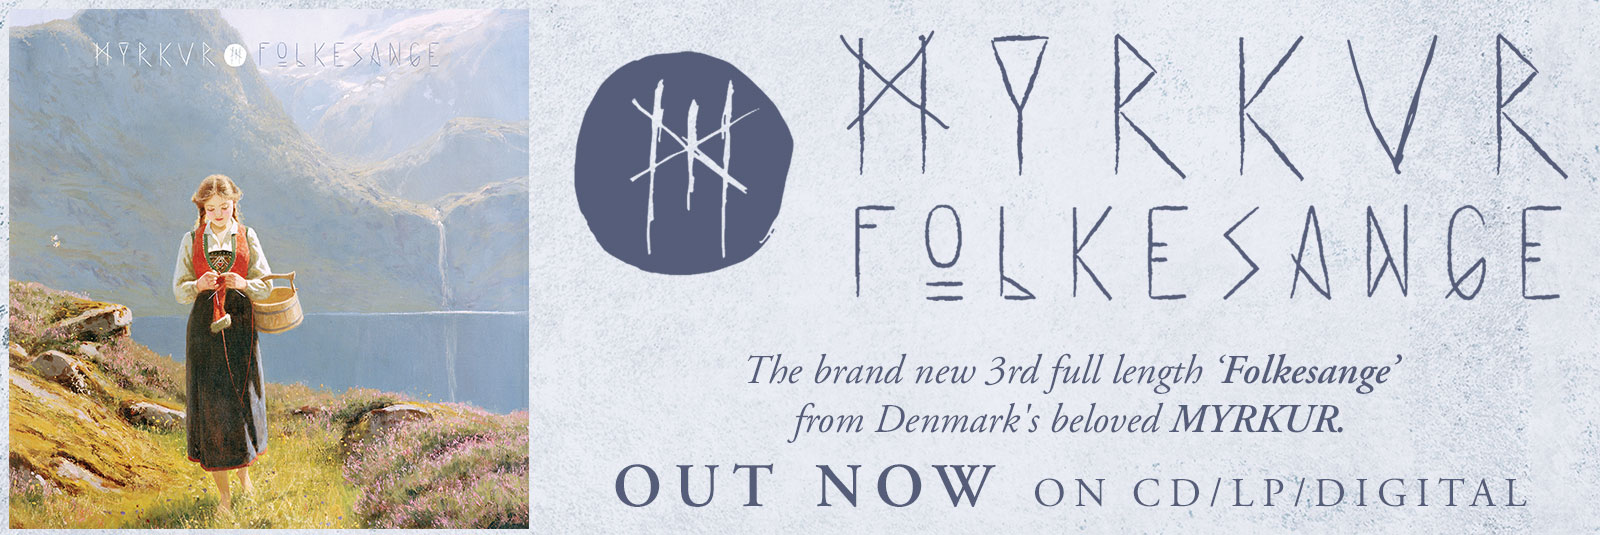 Myrkur-Folkesange-Folk-Danish-Traditional-World-Music-Relapse-Out-Now